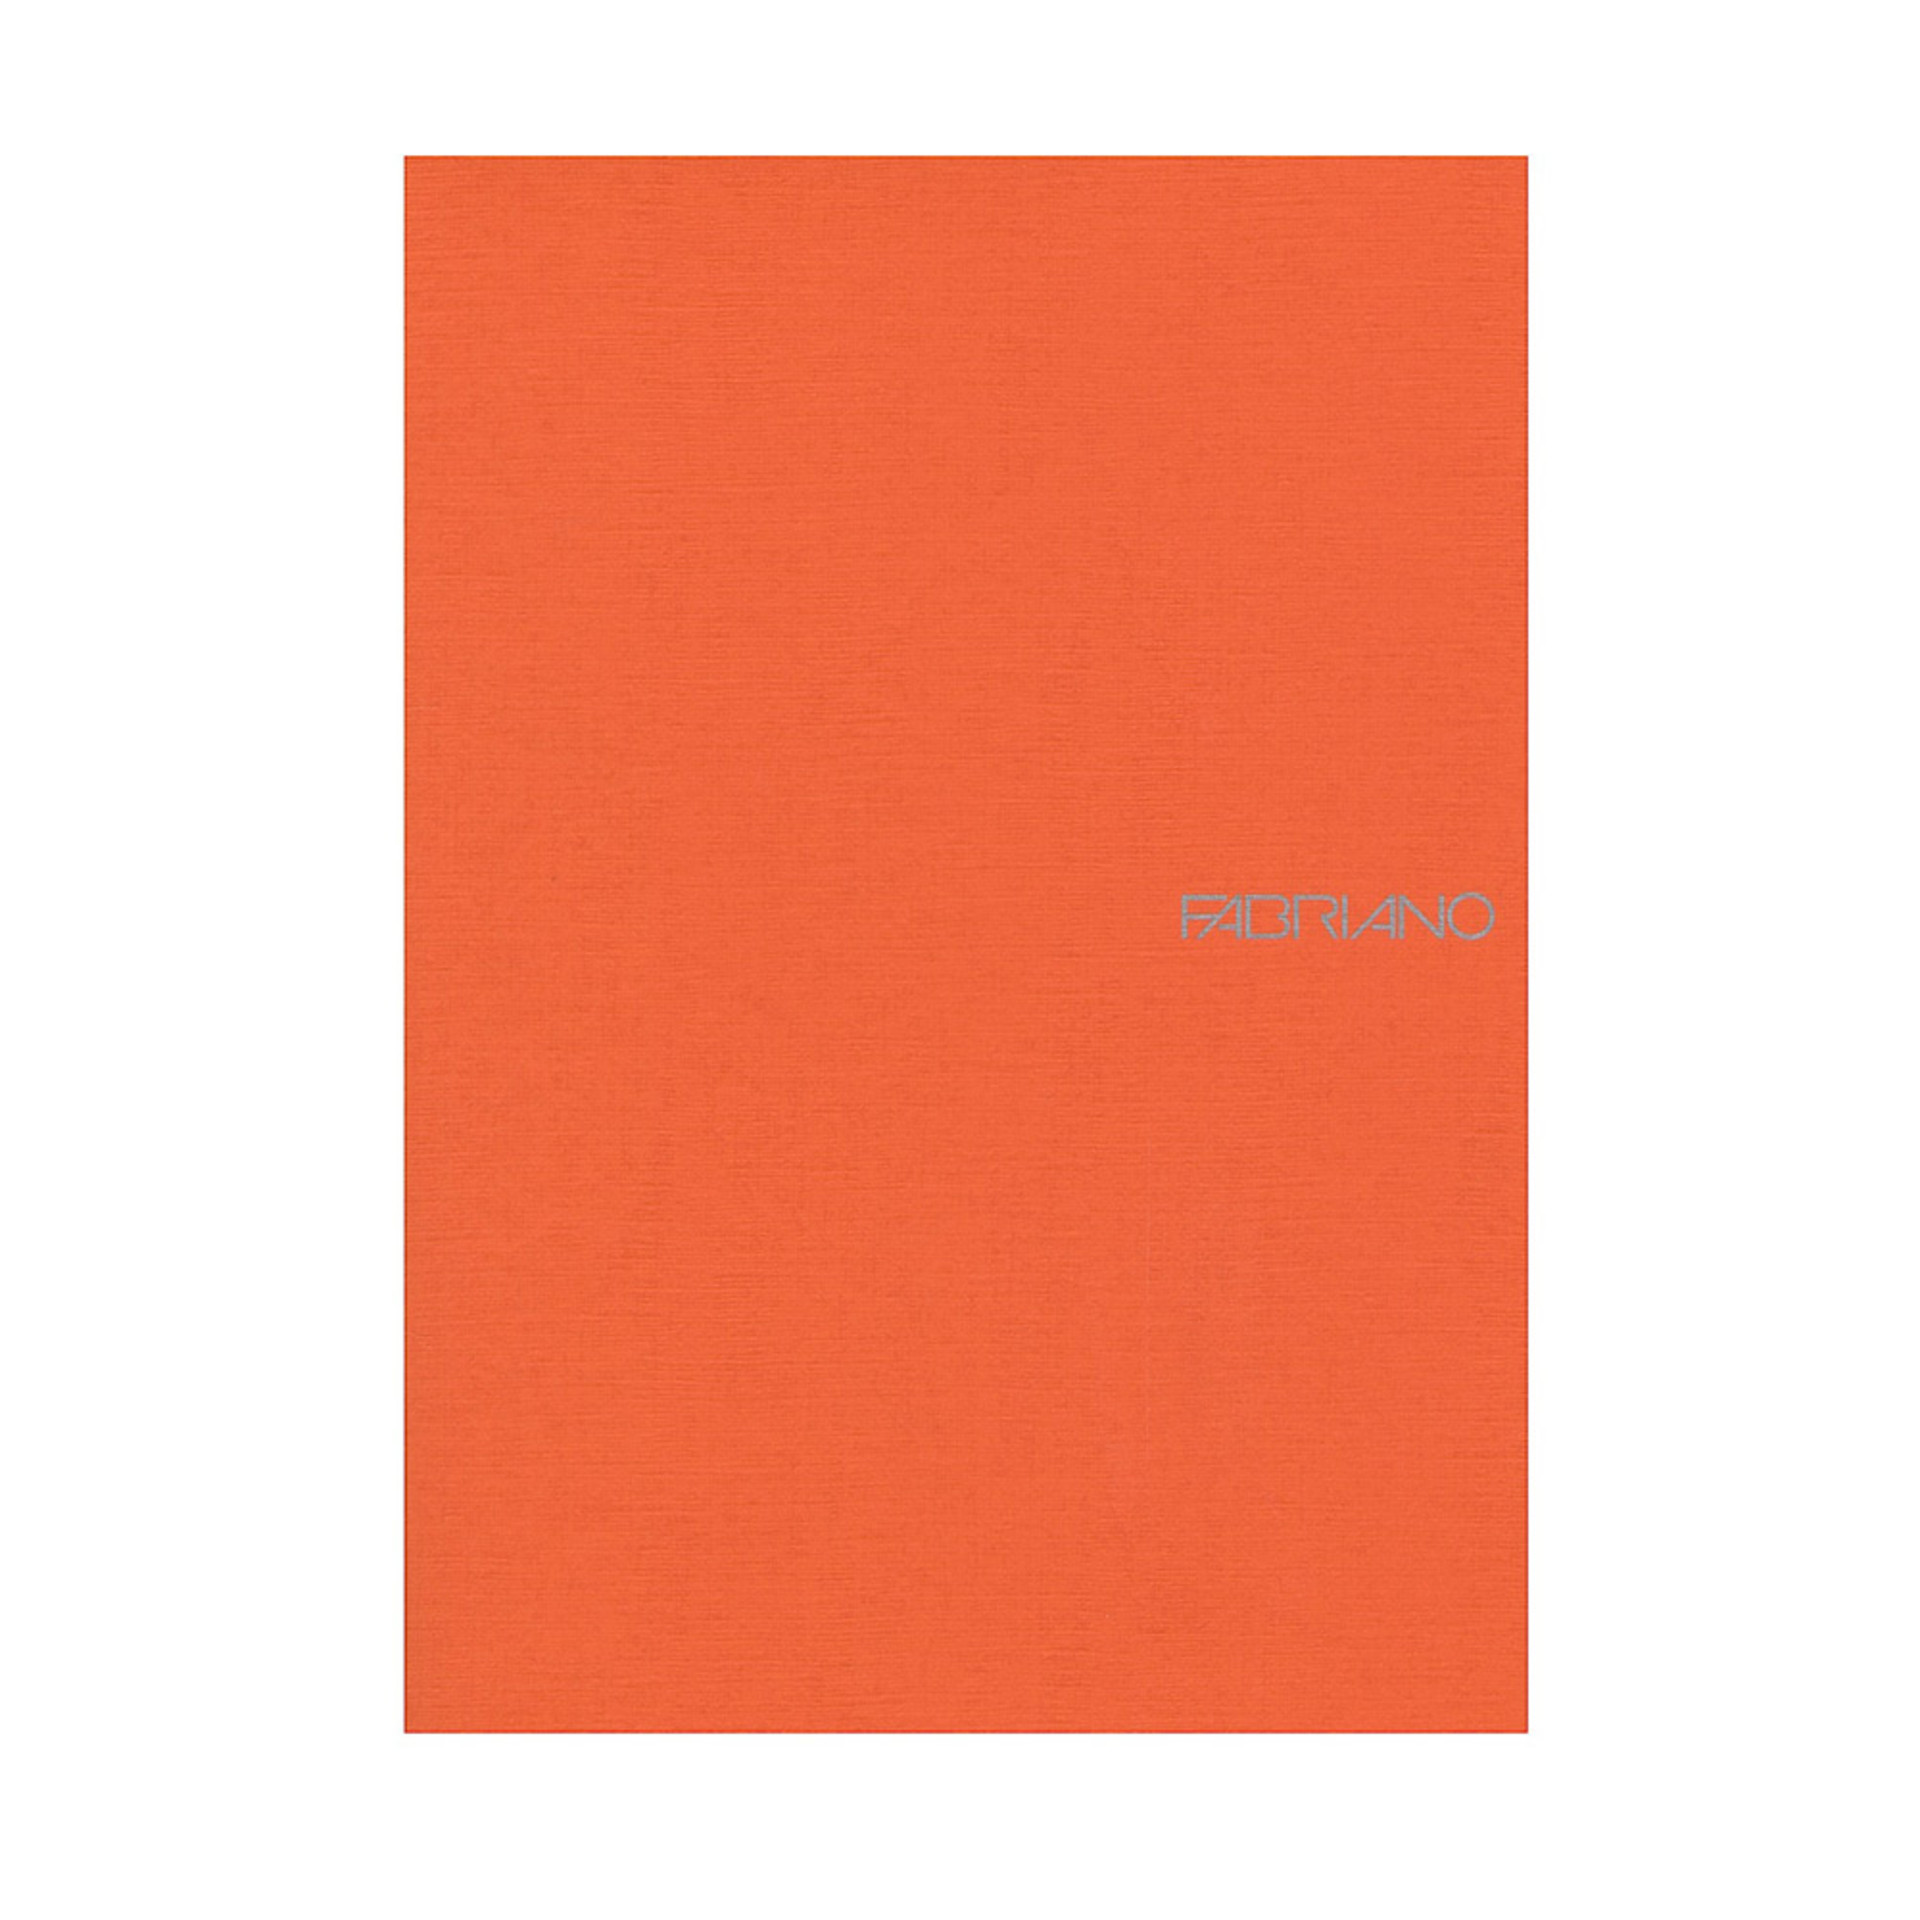 "Fabriano EcoQua Staplebound Blank 6""x 8"" Notebook Orange"